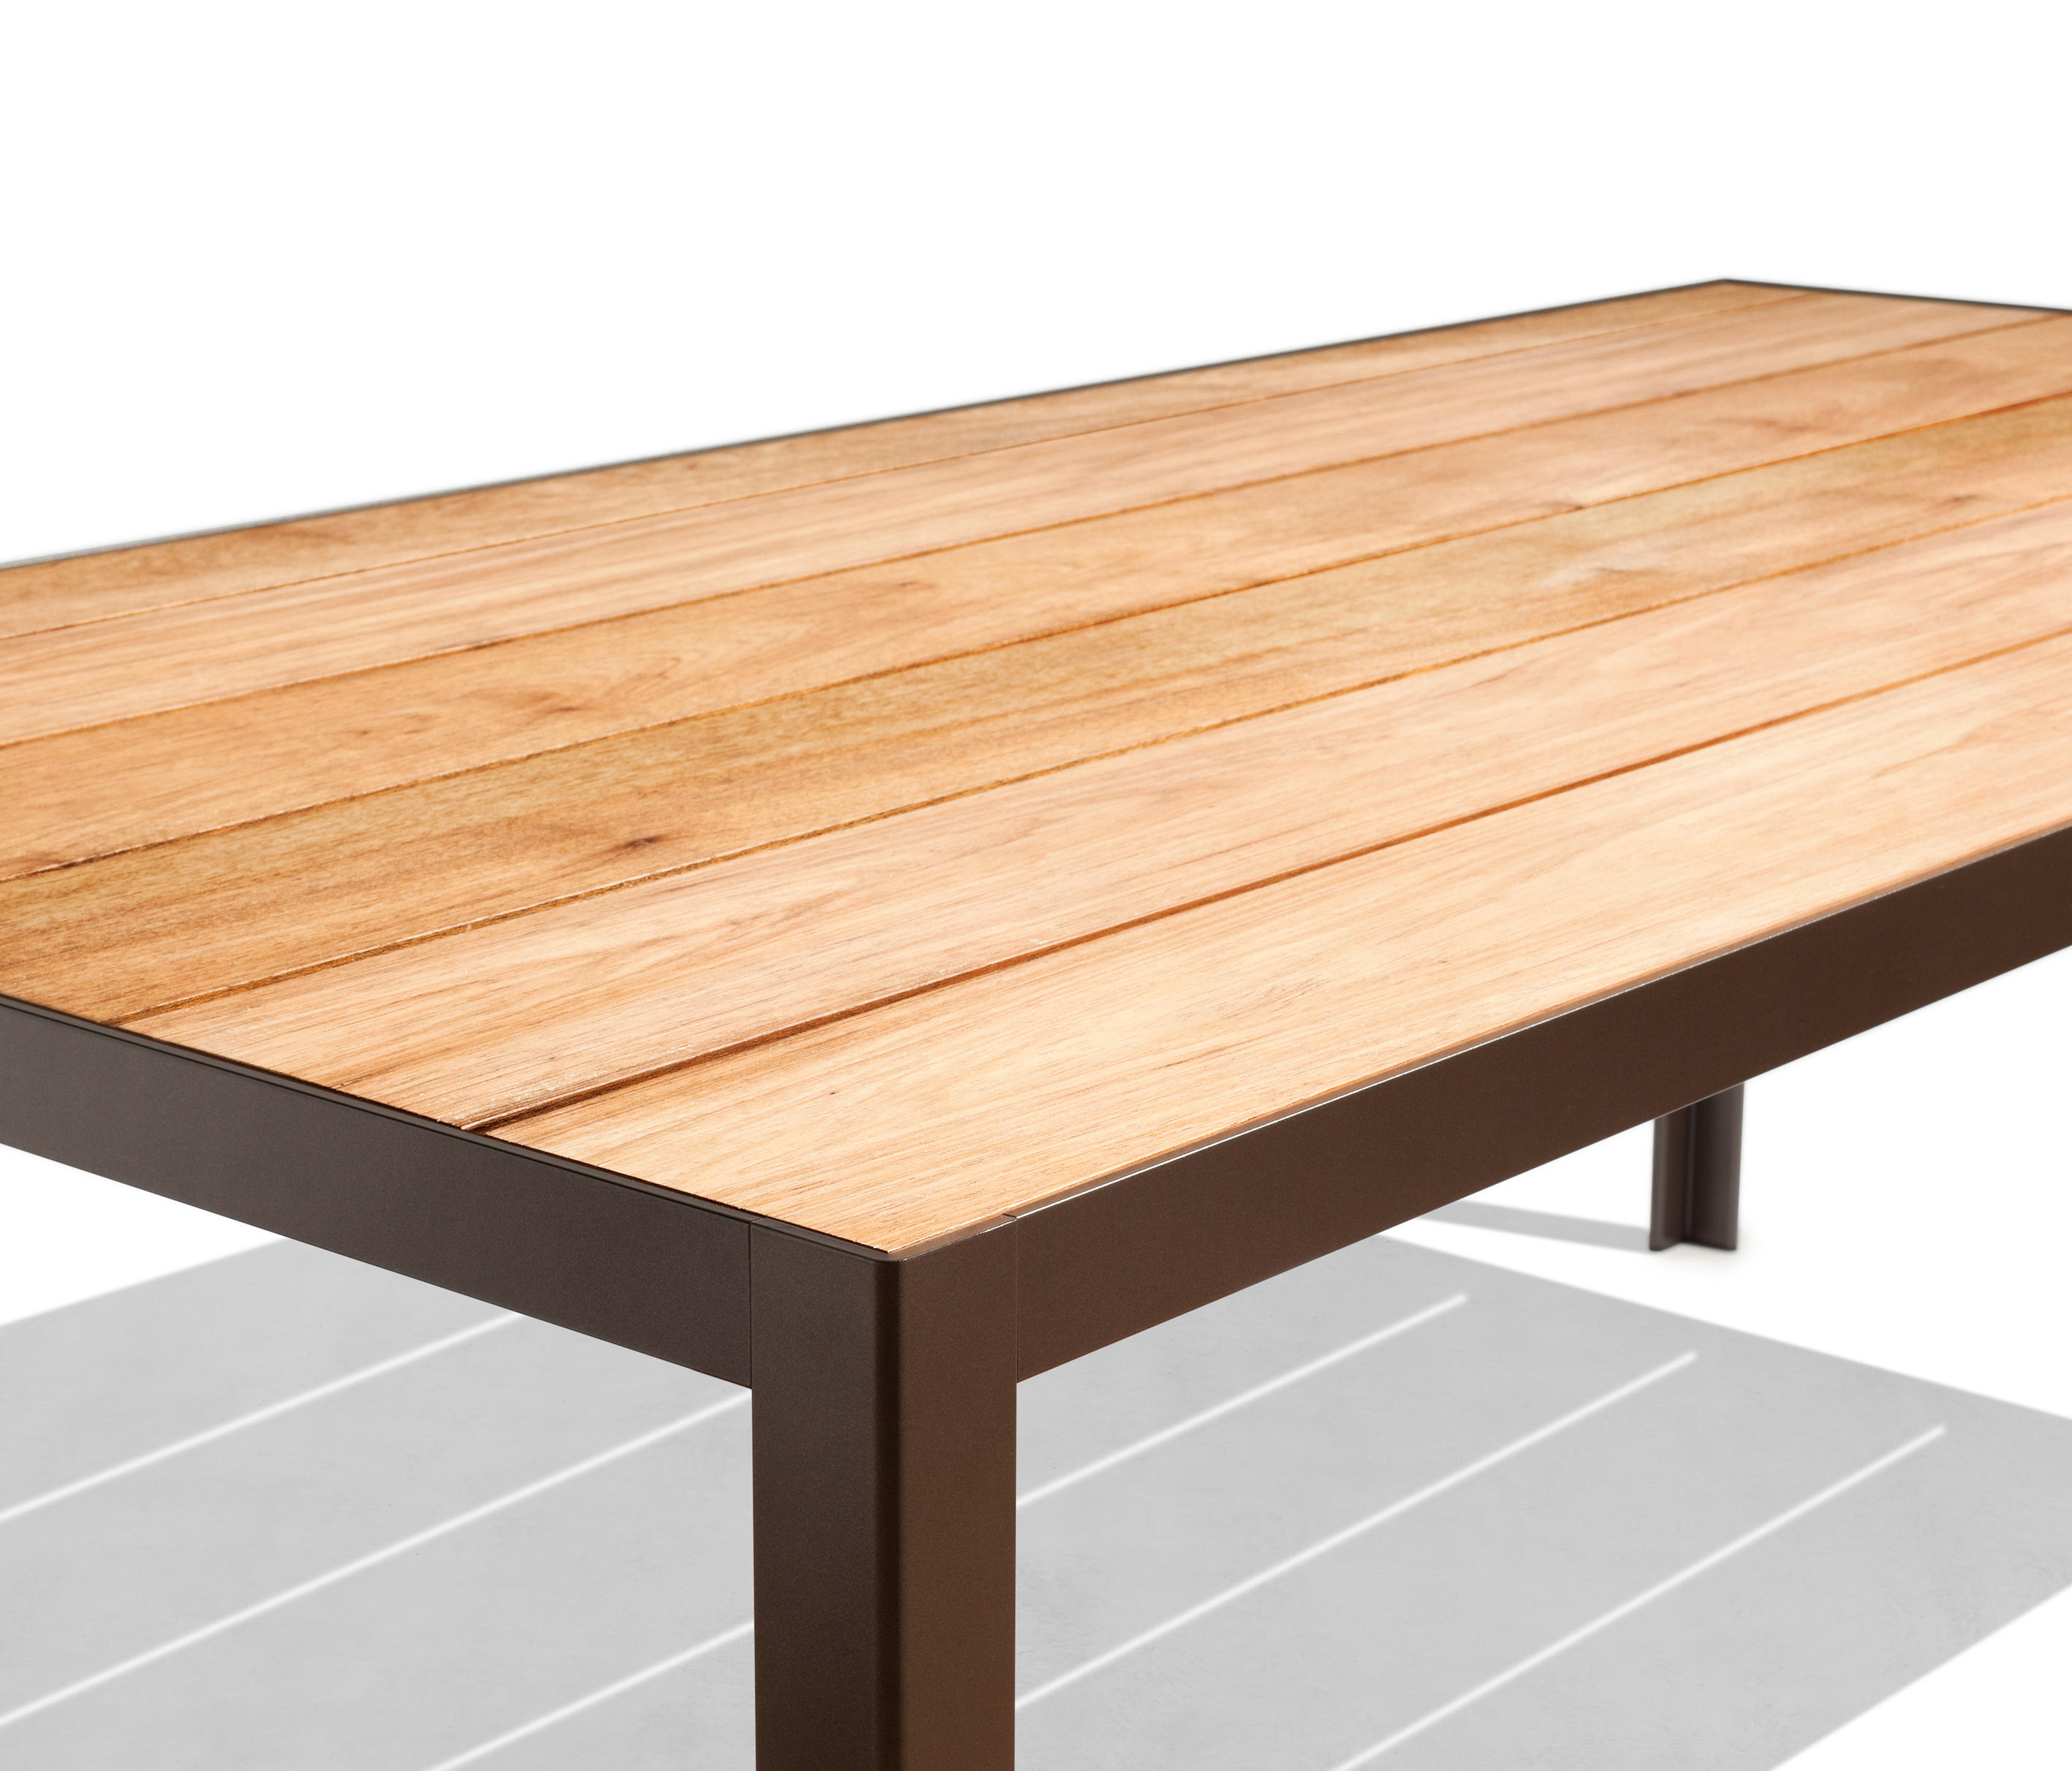 DATS LOW TABLE - Coffee tables from Bivaq | Architonic